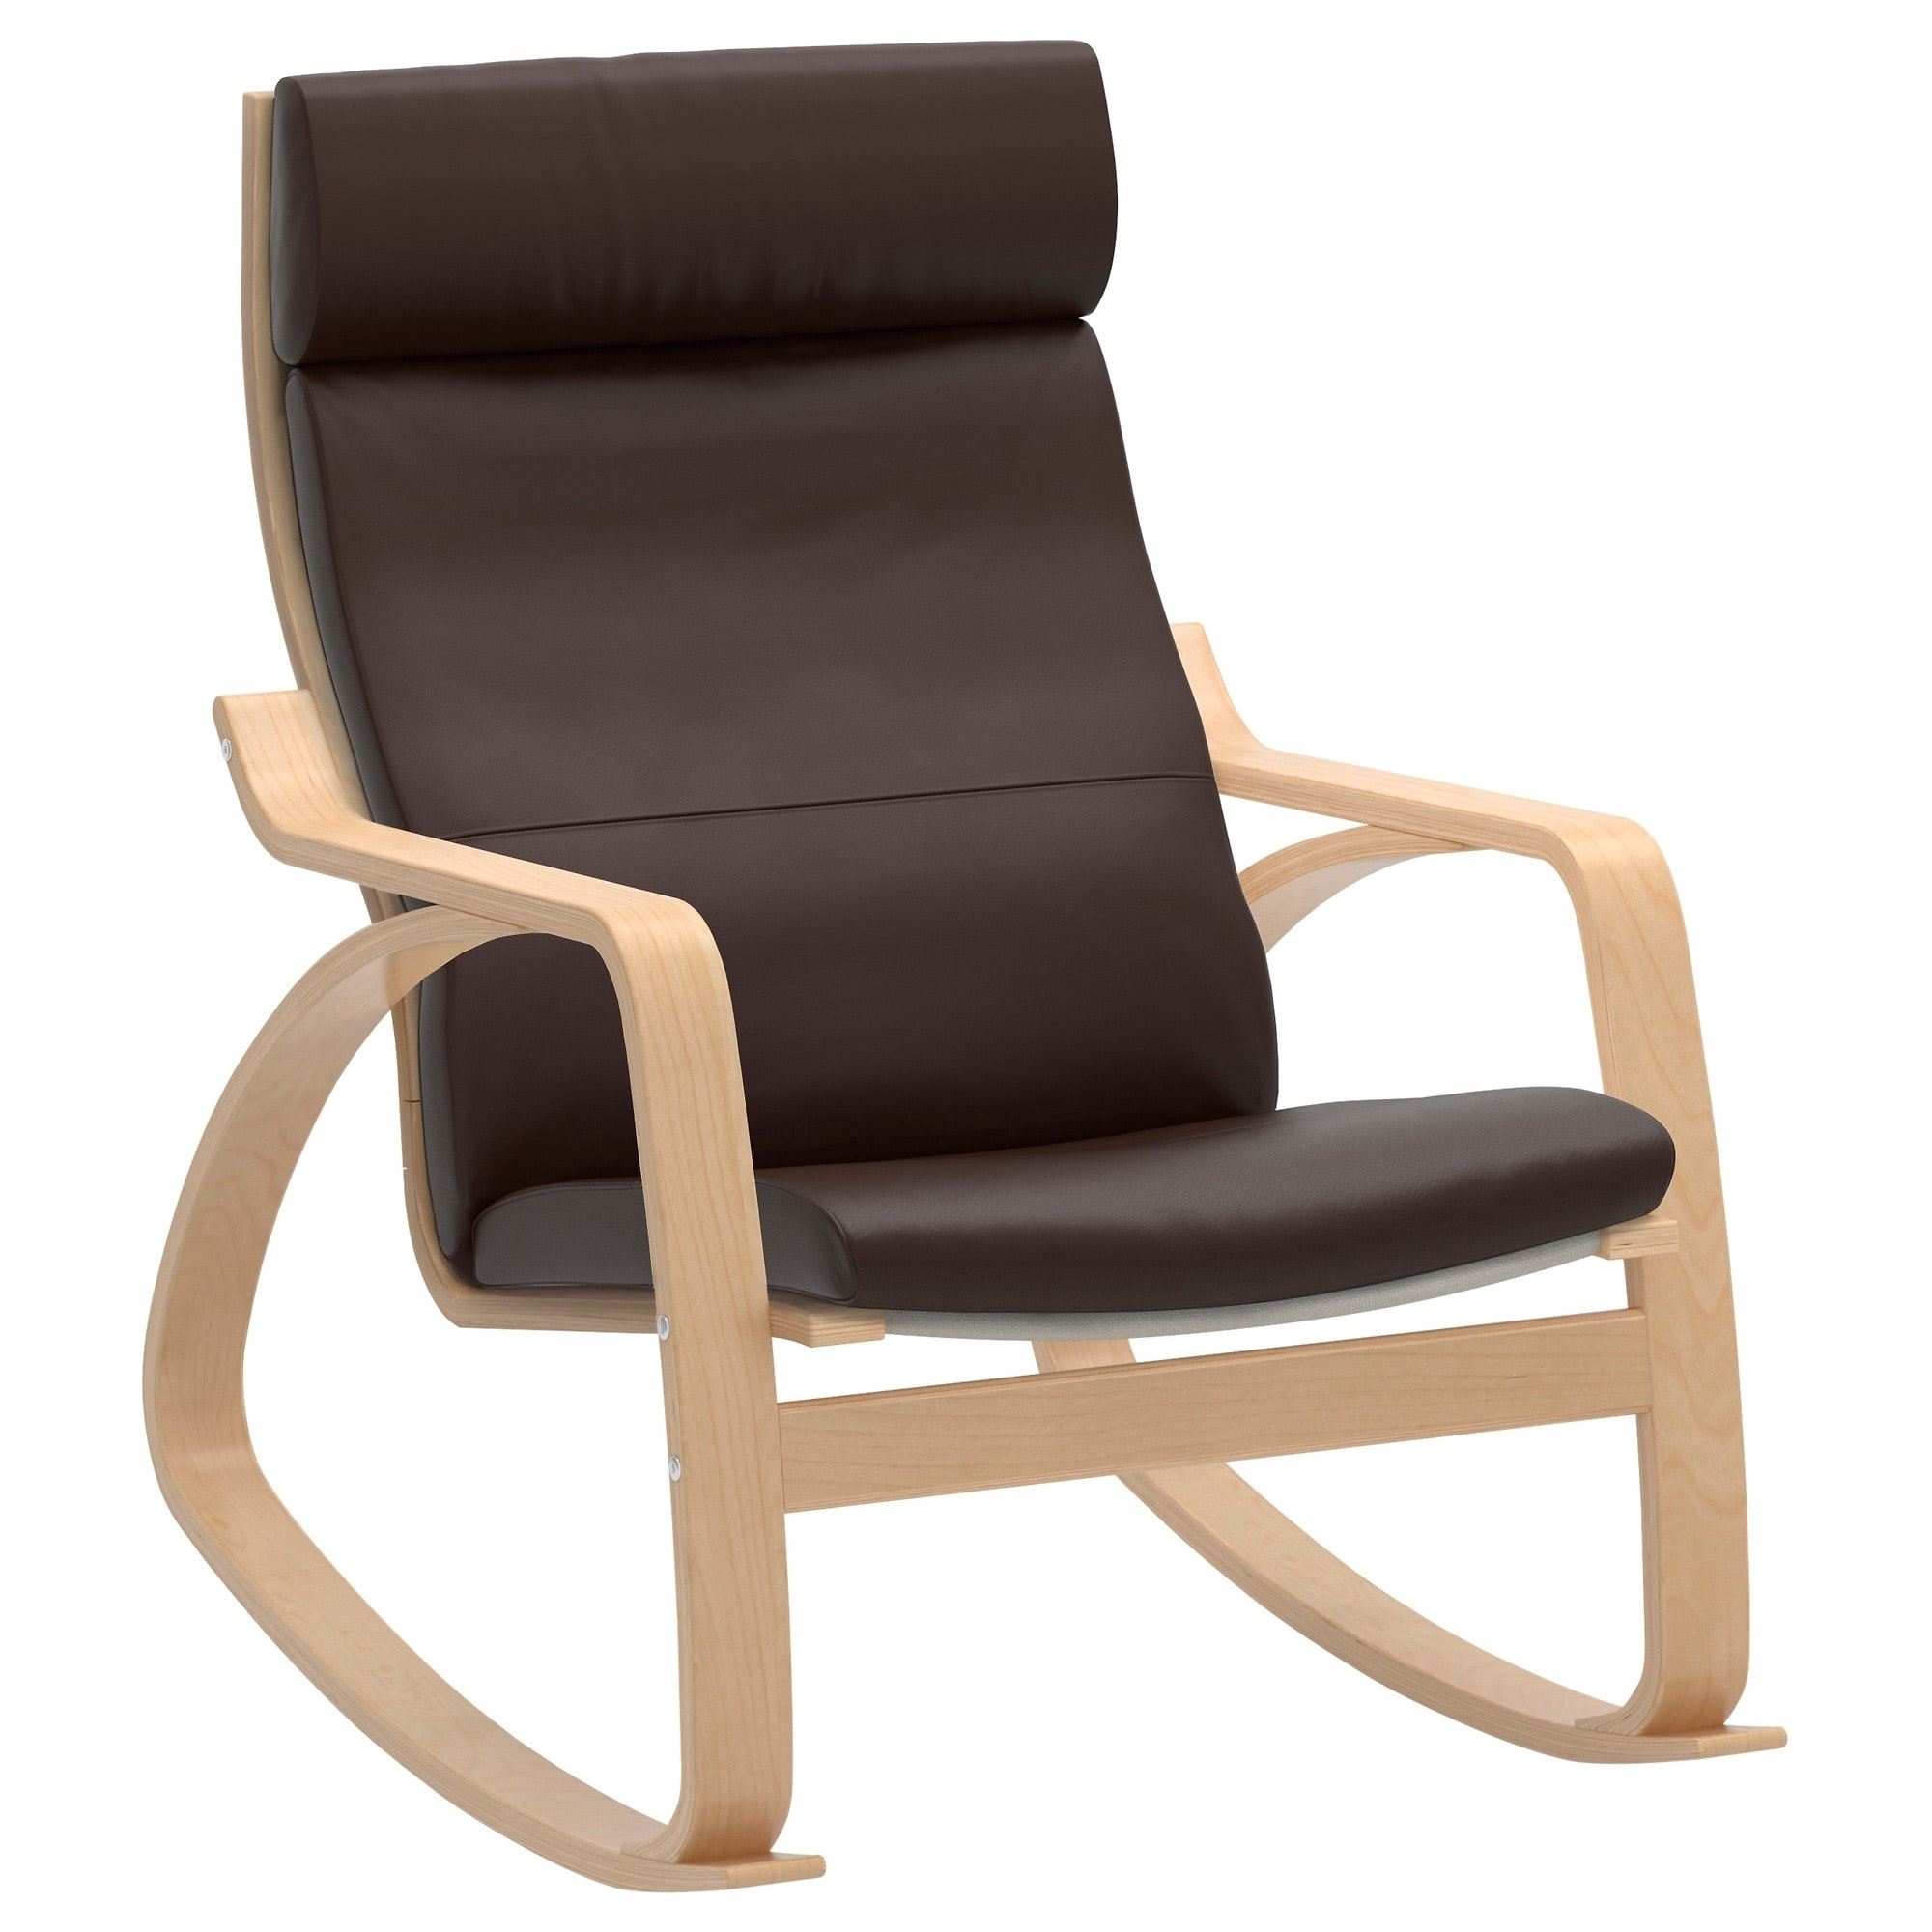 Widely Used Poäng – Ikea Intended For Rocking Chairs With Footstool (View 14 of 15)